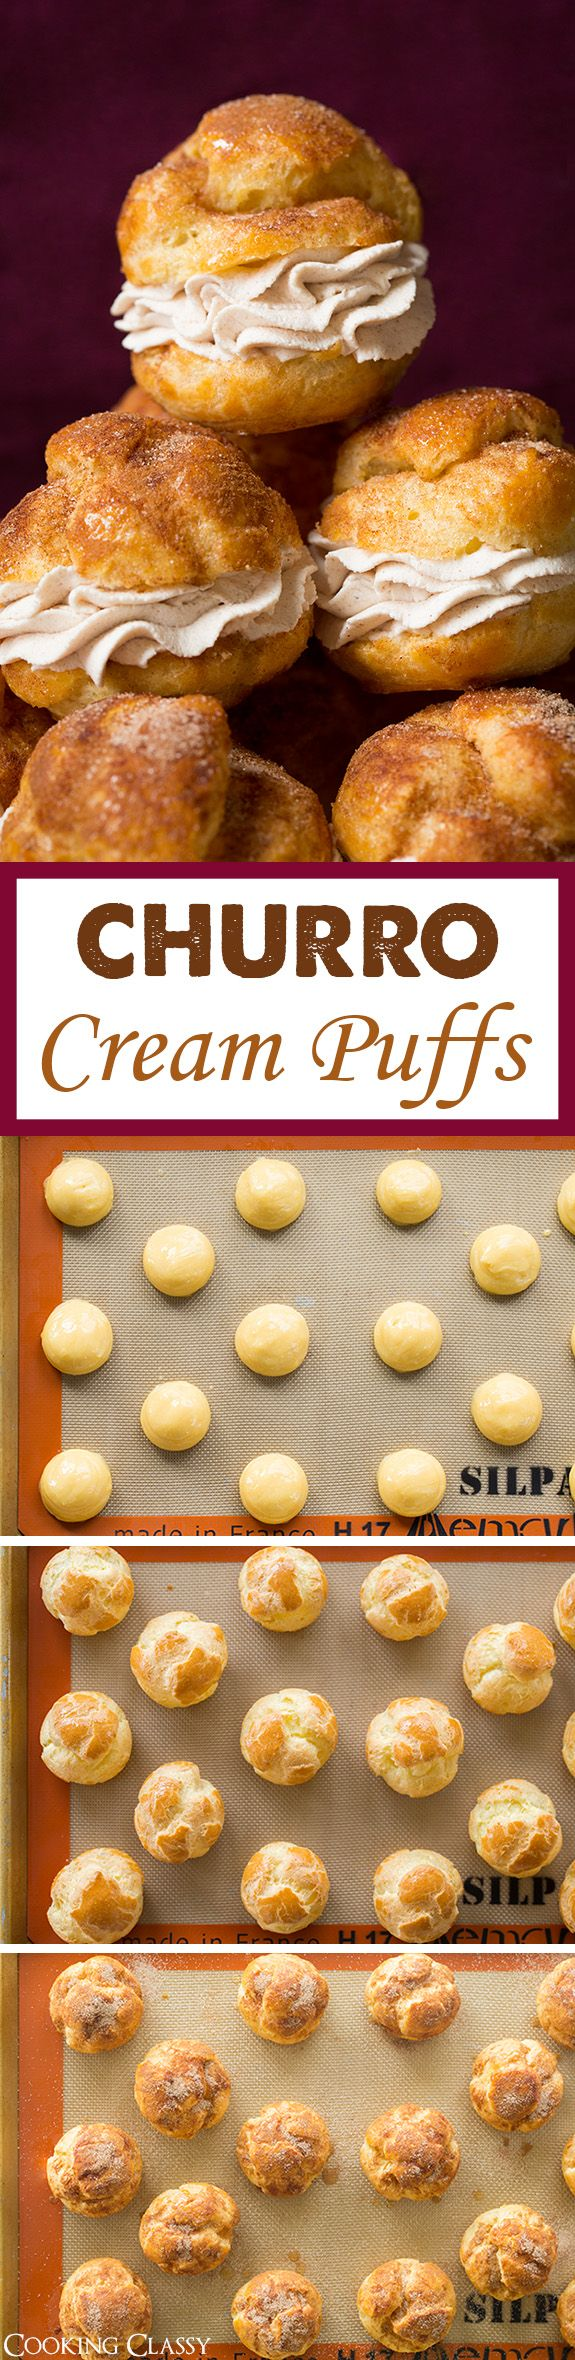 Churros meet cream puffs in this creative and delicious treat thought up by Barbara Schieving of Barbara Bakes. All I can say is where have these been all